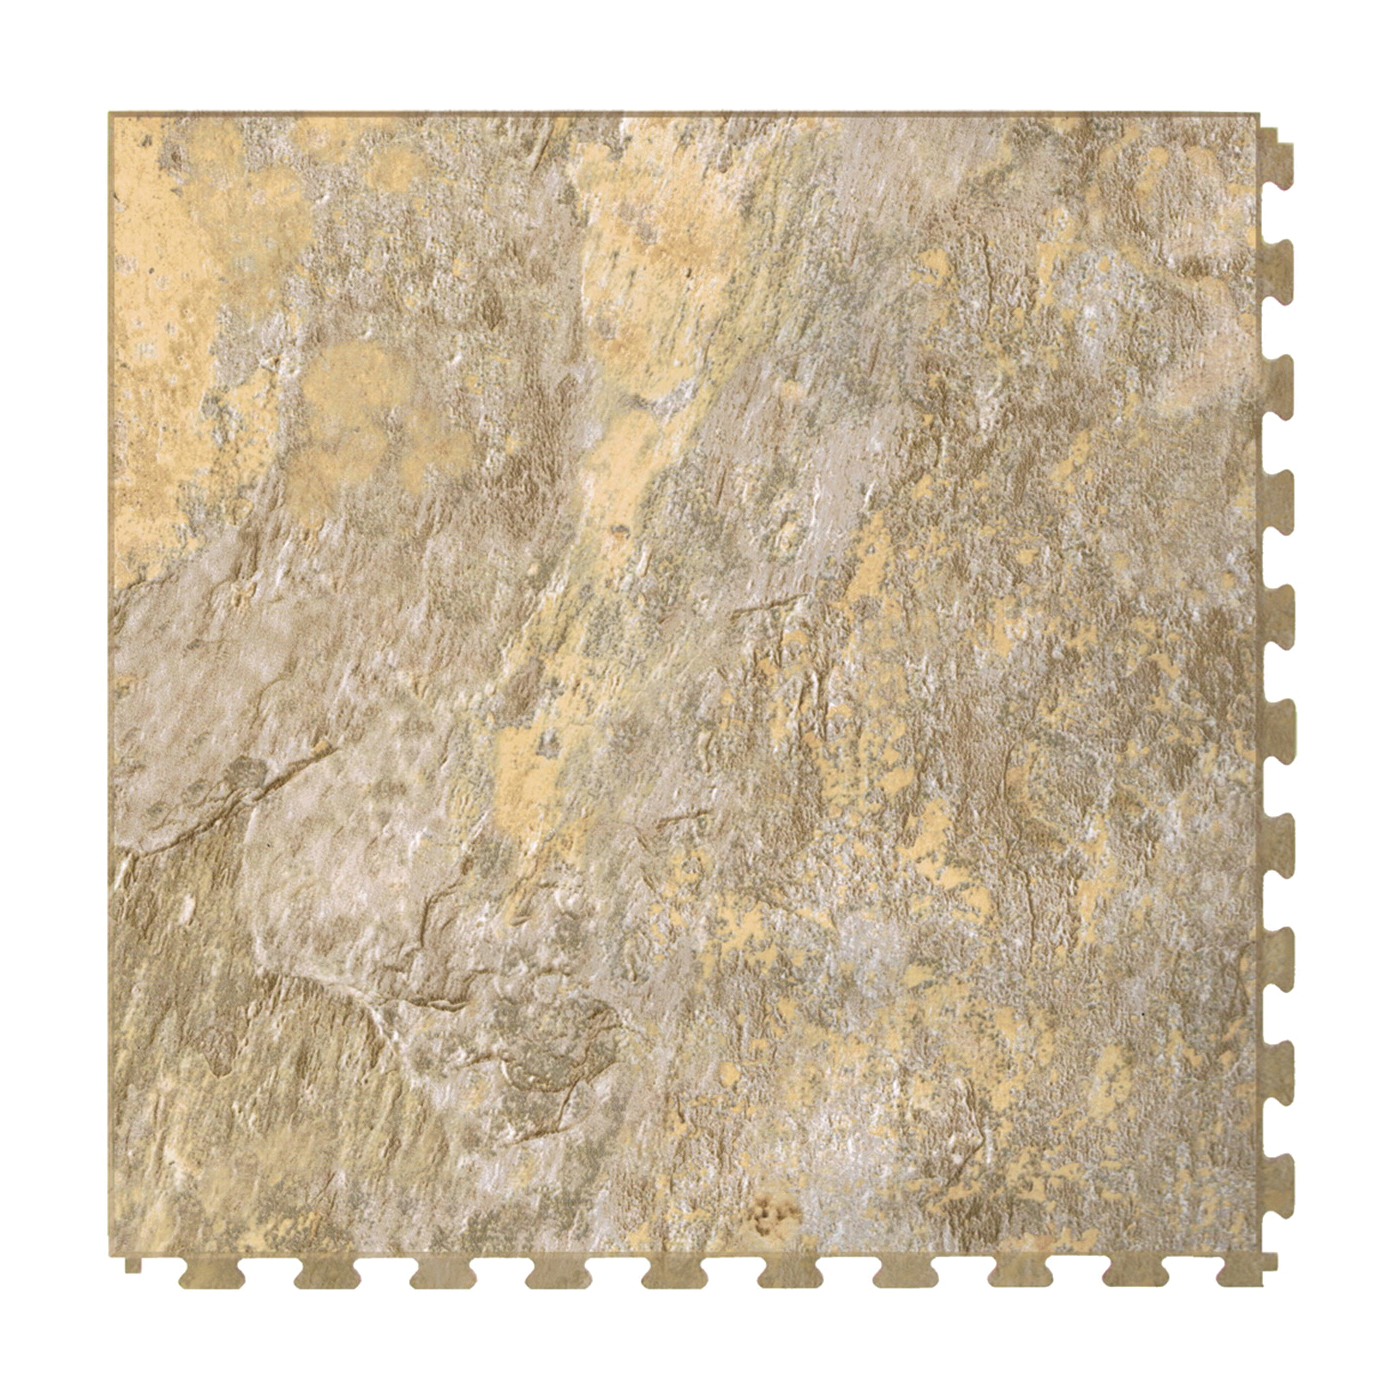 Picture of PERFECTION FLOOR TILE ITNS570SG50 Floor Tile, 20 in L Tile, 20 in W Tile, Granite Pattern